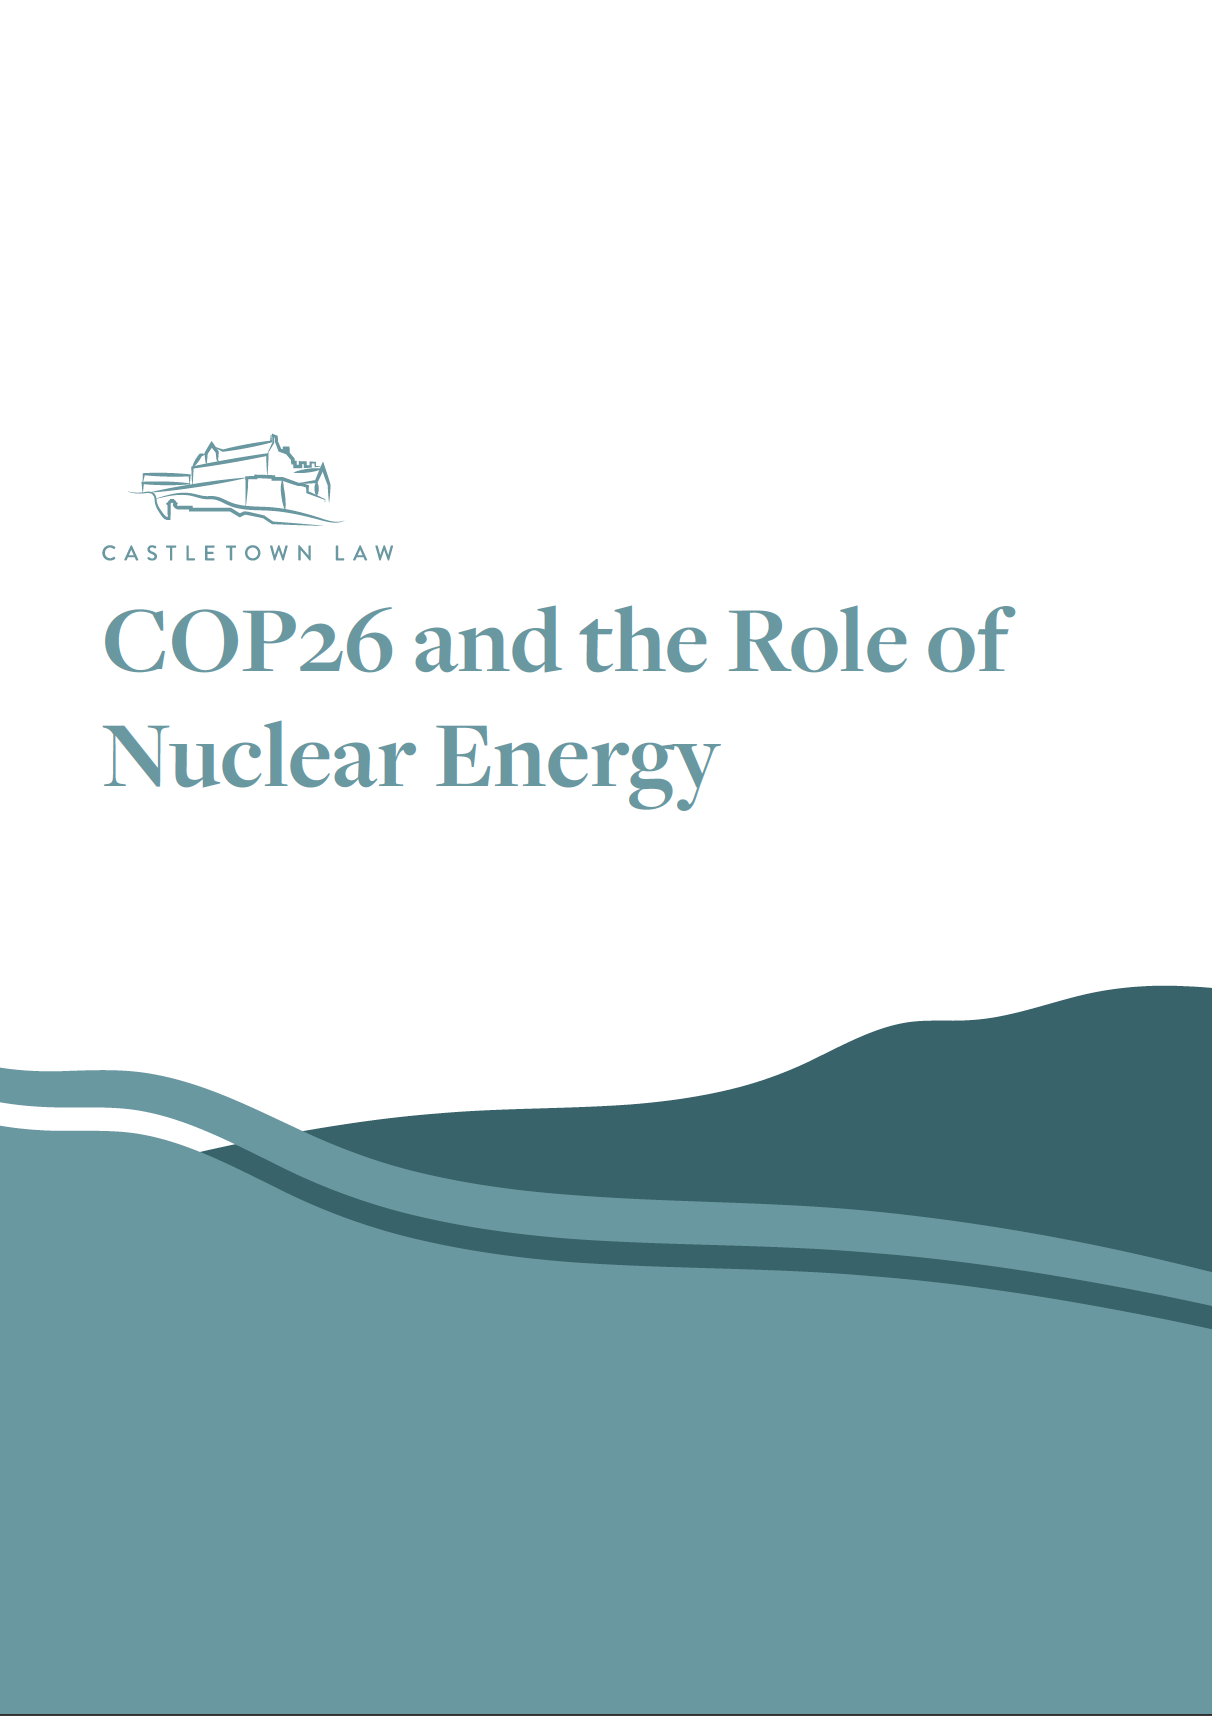 COP26 and the role of Nuclear Energy (Nov 2020)